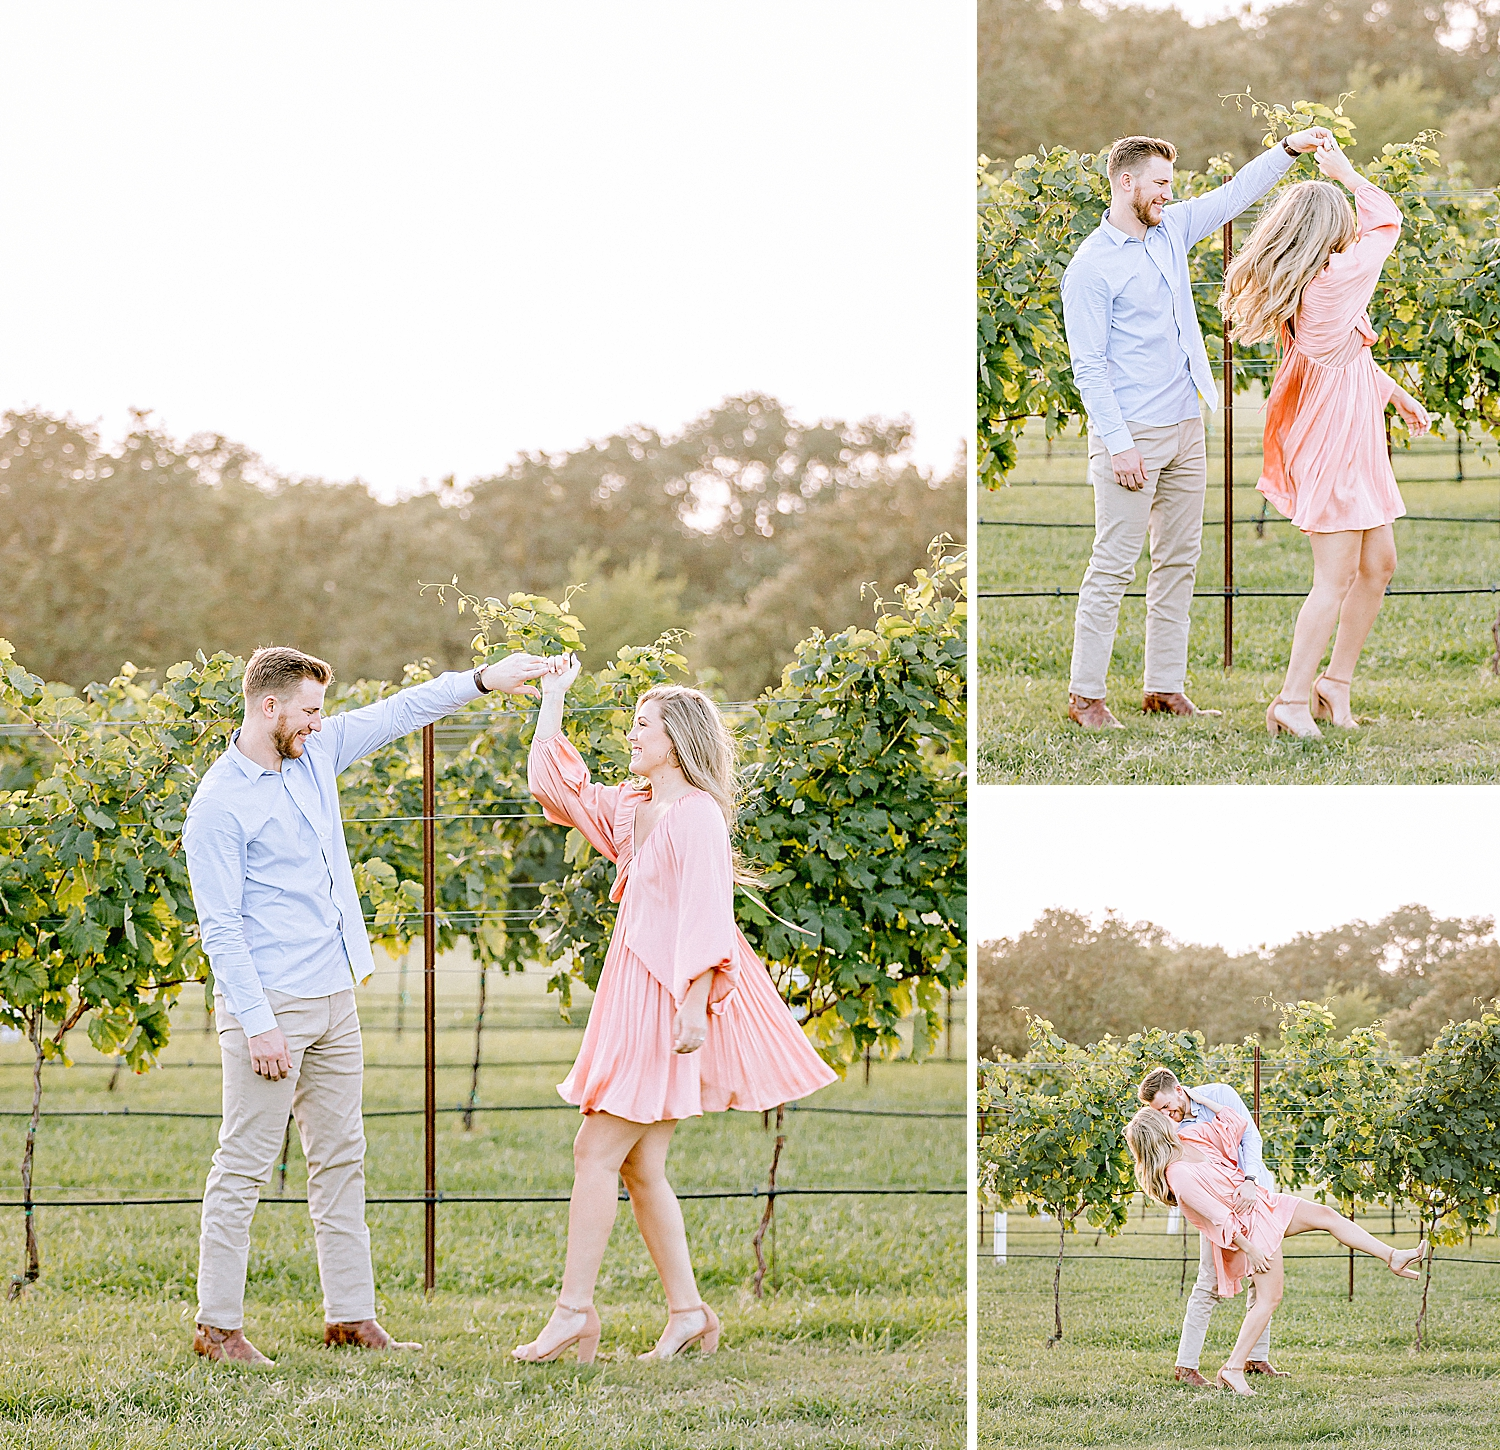 Carly-Barton-Photography-Engagement-Photos-College-Station-Texas-The-Weinberg-at-Wixon-Valley_0008.jpg